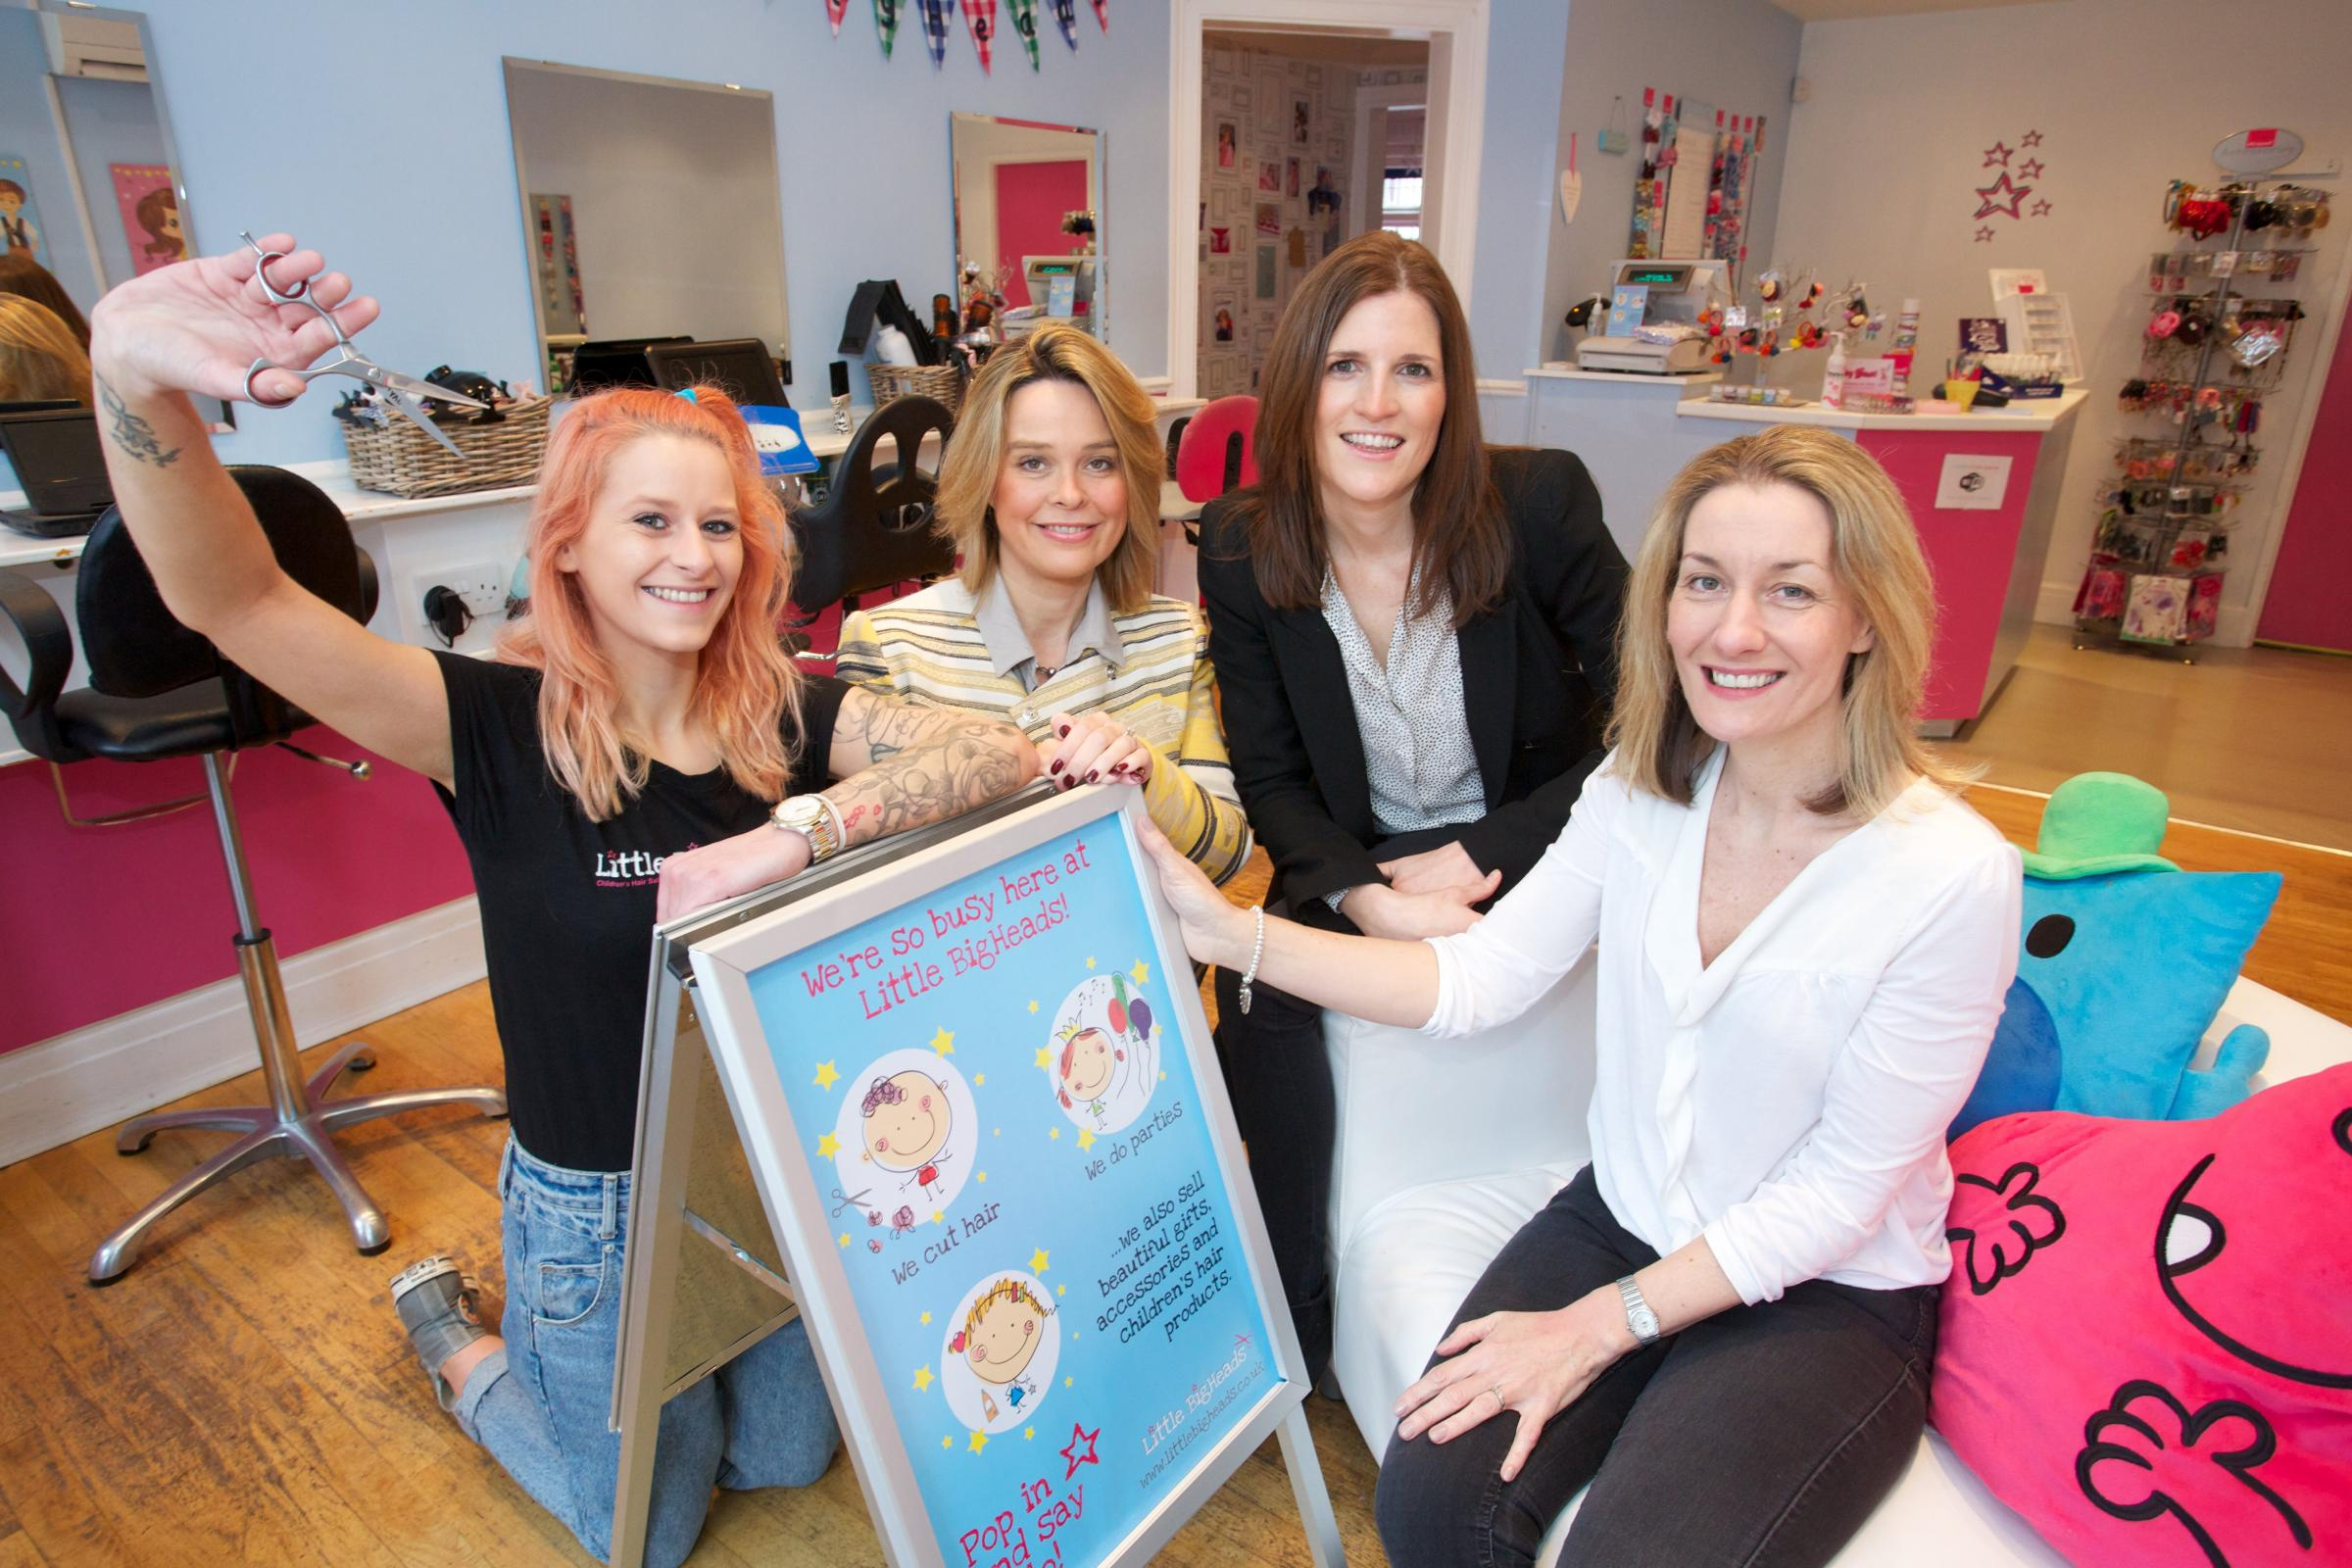 From left, stylist Sarah Voice, Emma Beardsley and Catherine Dickinson, both from Firework PR and Sharon Dobson owner of Little BigHeads.